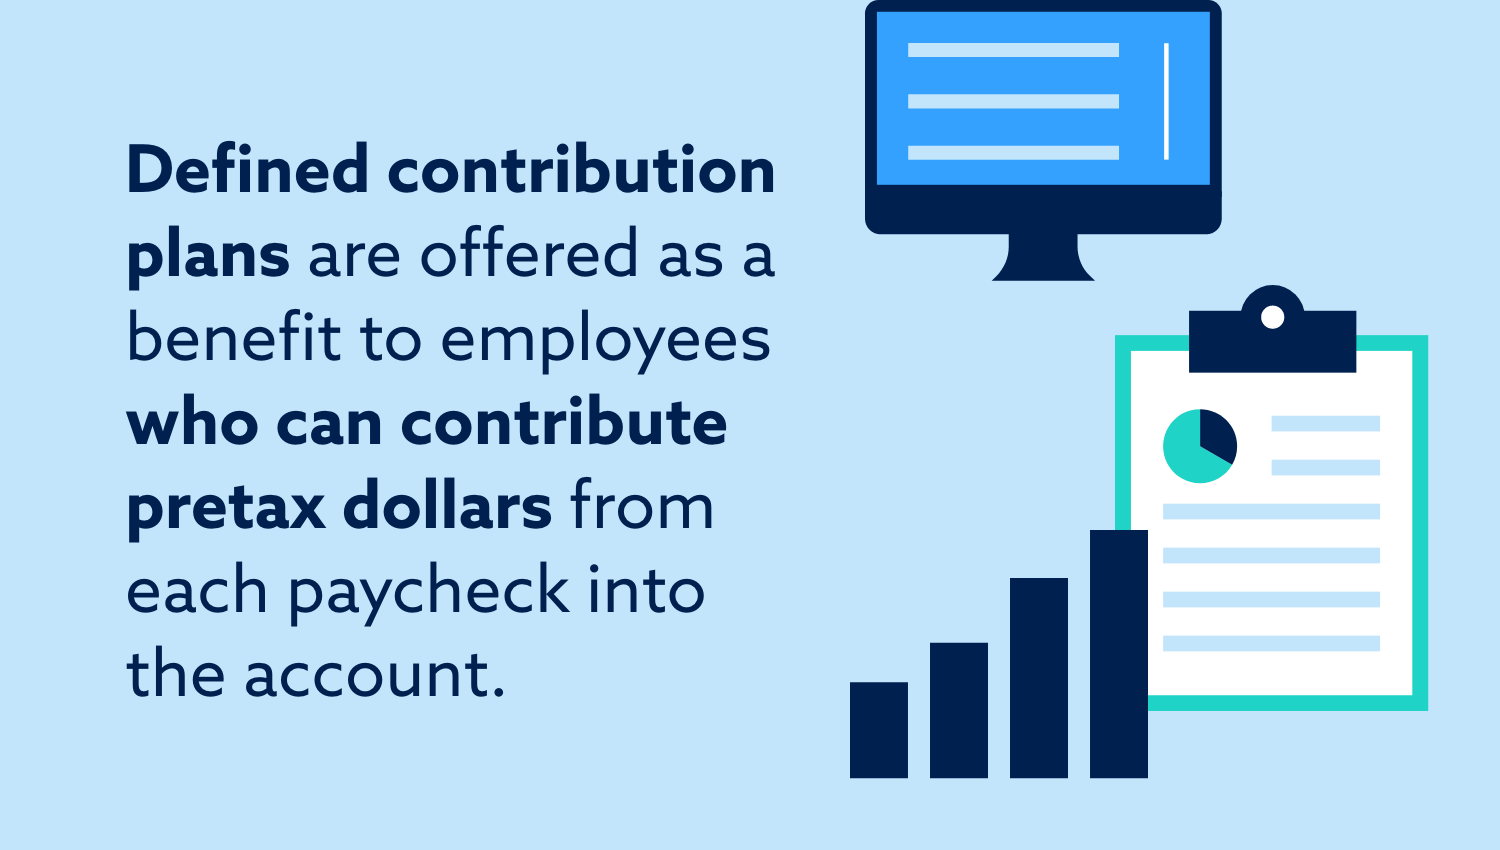 Defined contribution plans are offered as a benefit to employees who can contribute pretax dollars from each paycheck into the account.